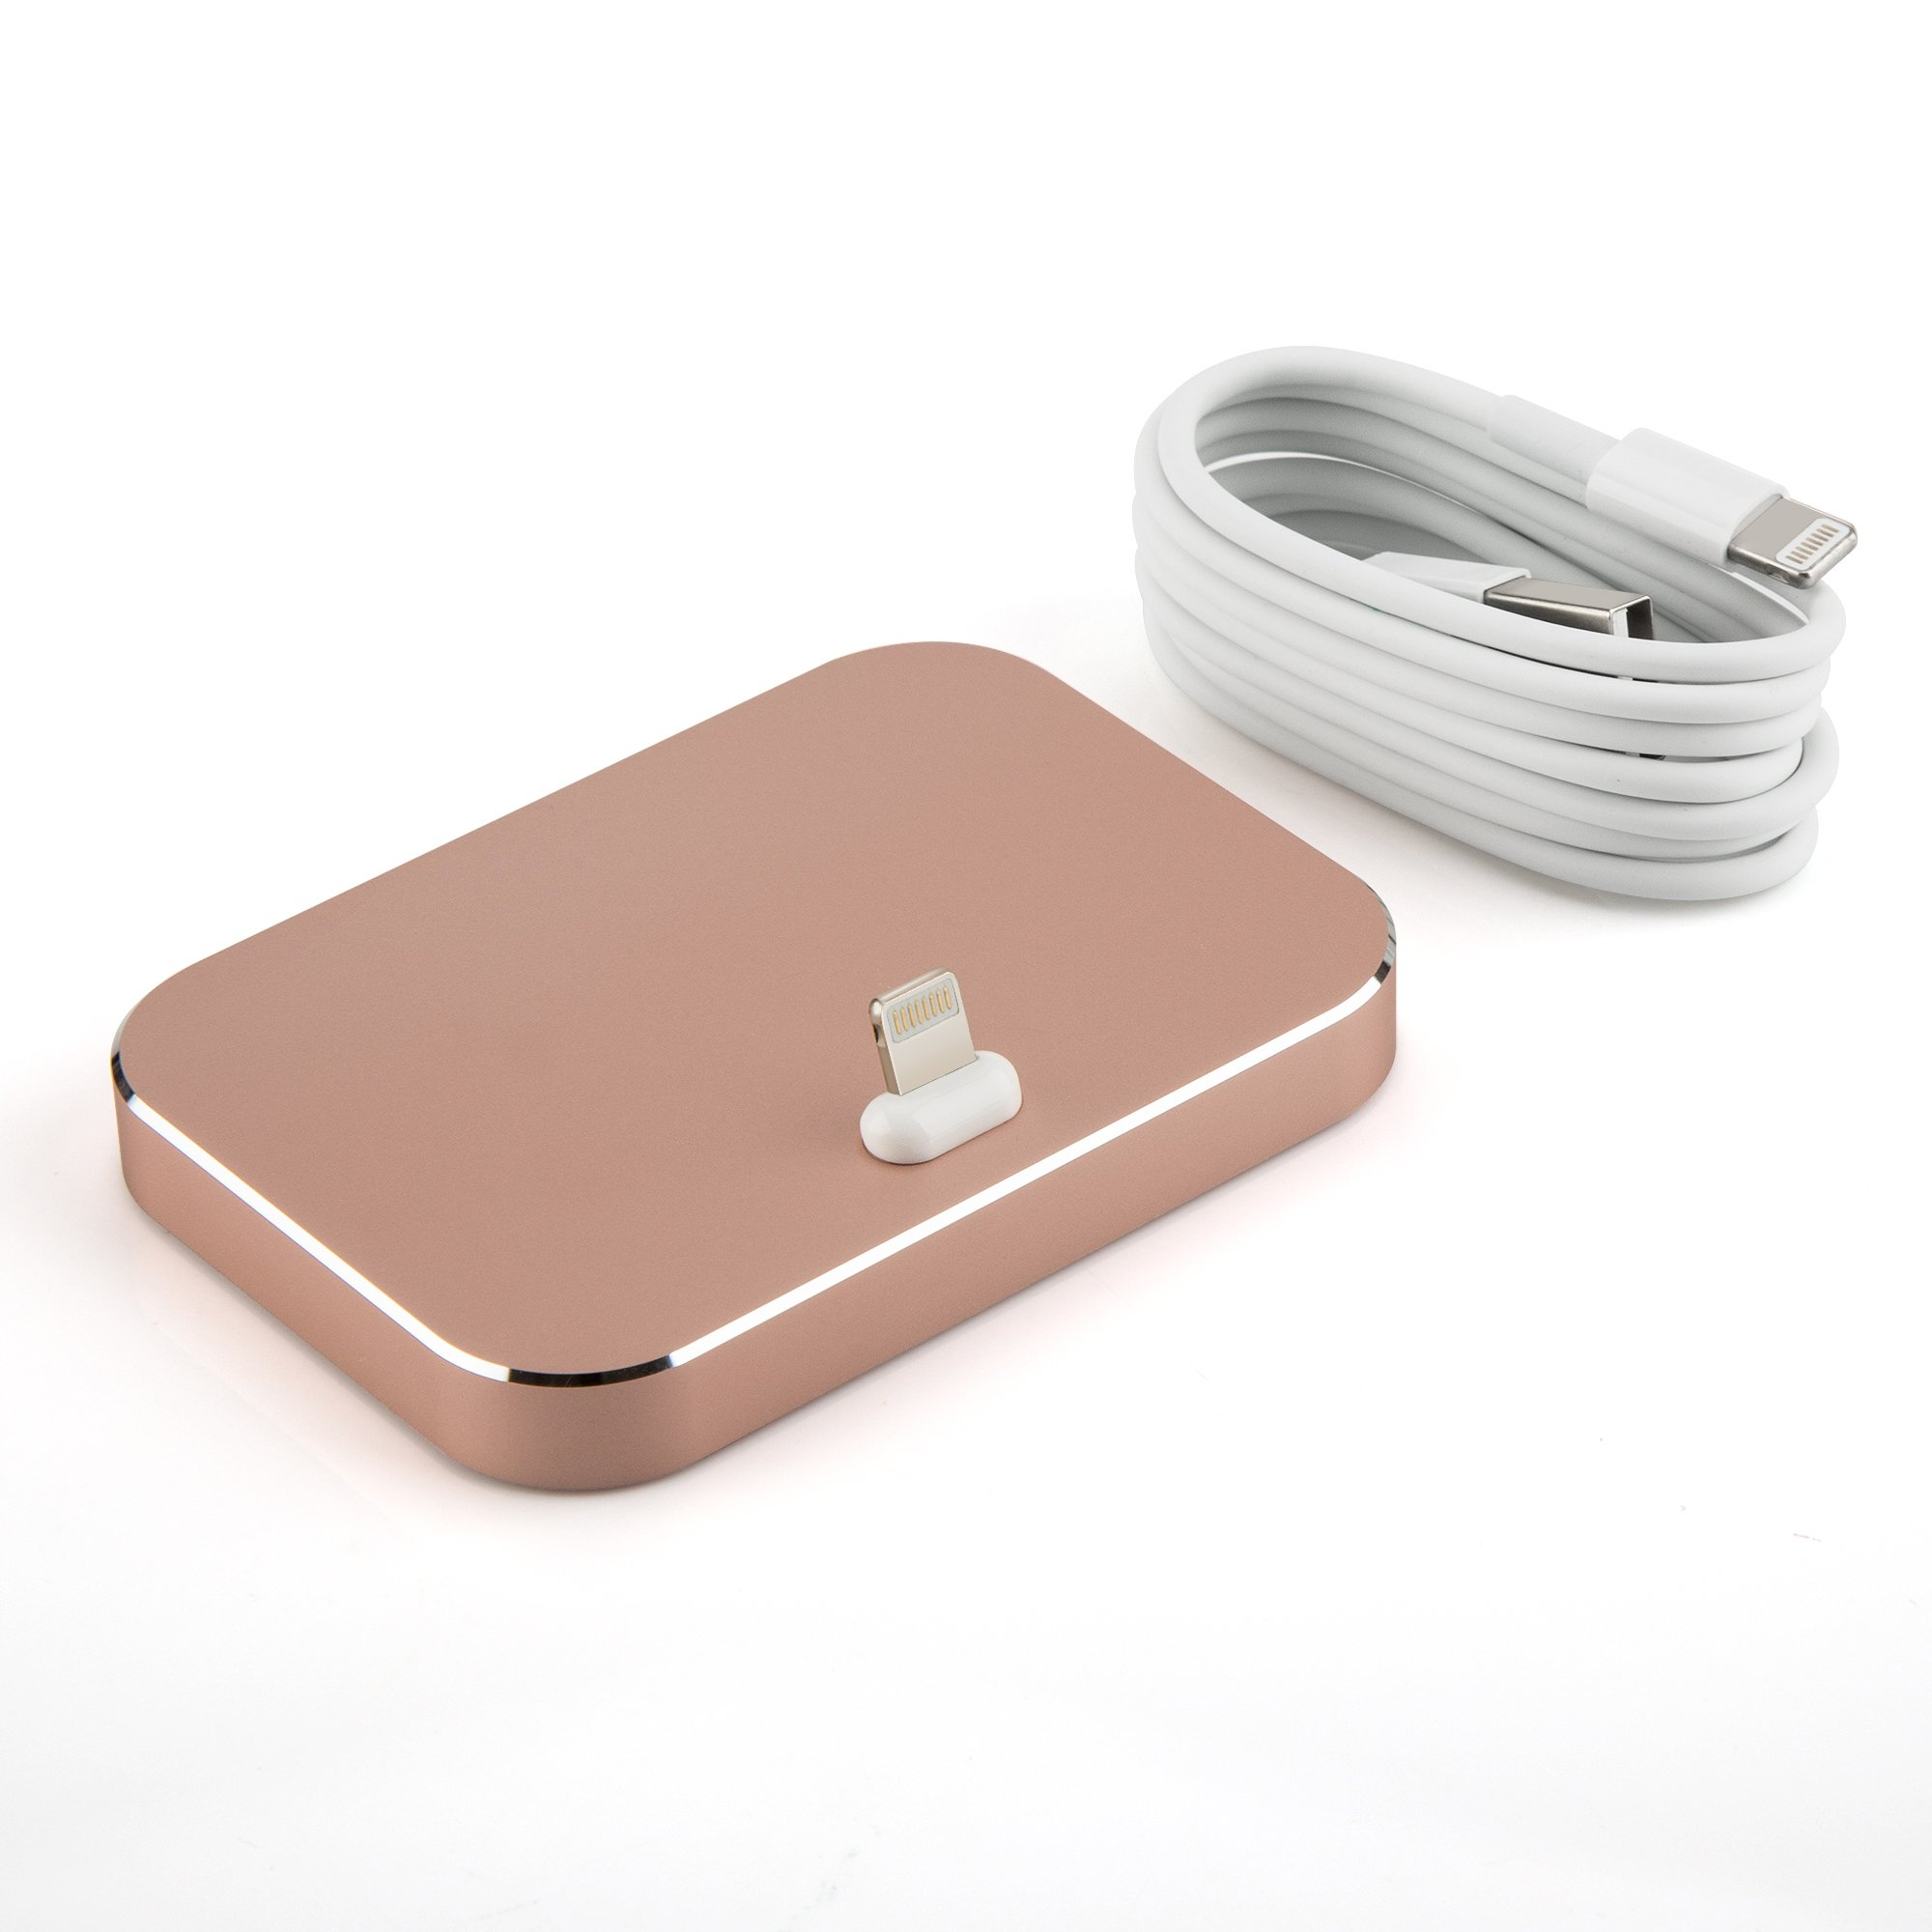 Lightning Dockinstation OKCS Aluminium Dockingstation + 1 Meter USB Charge Cable for iPhone SE, 6s Plus, 6 5, 5s, 5c, iPod Touch & Nano in Rose Gold by OKCS